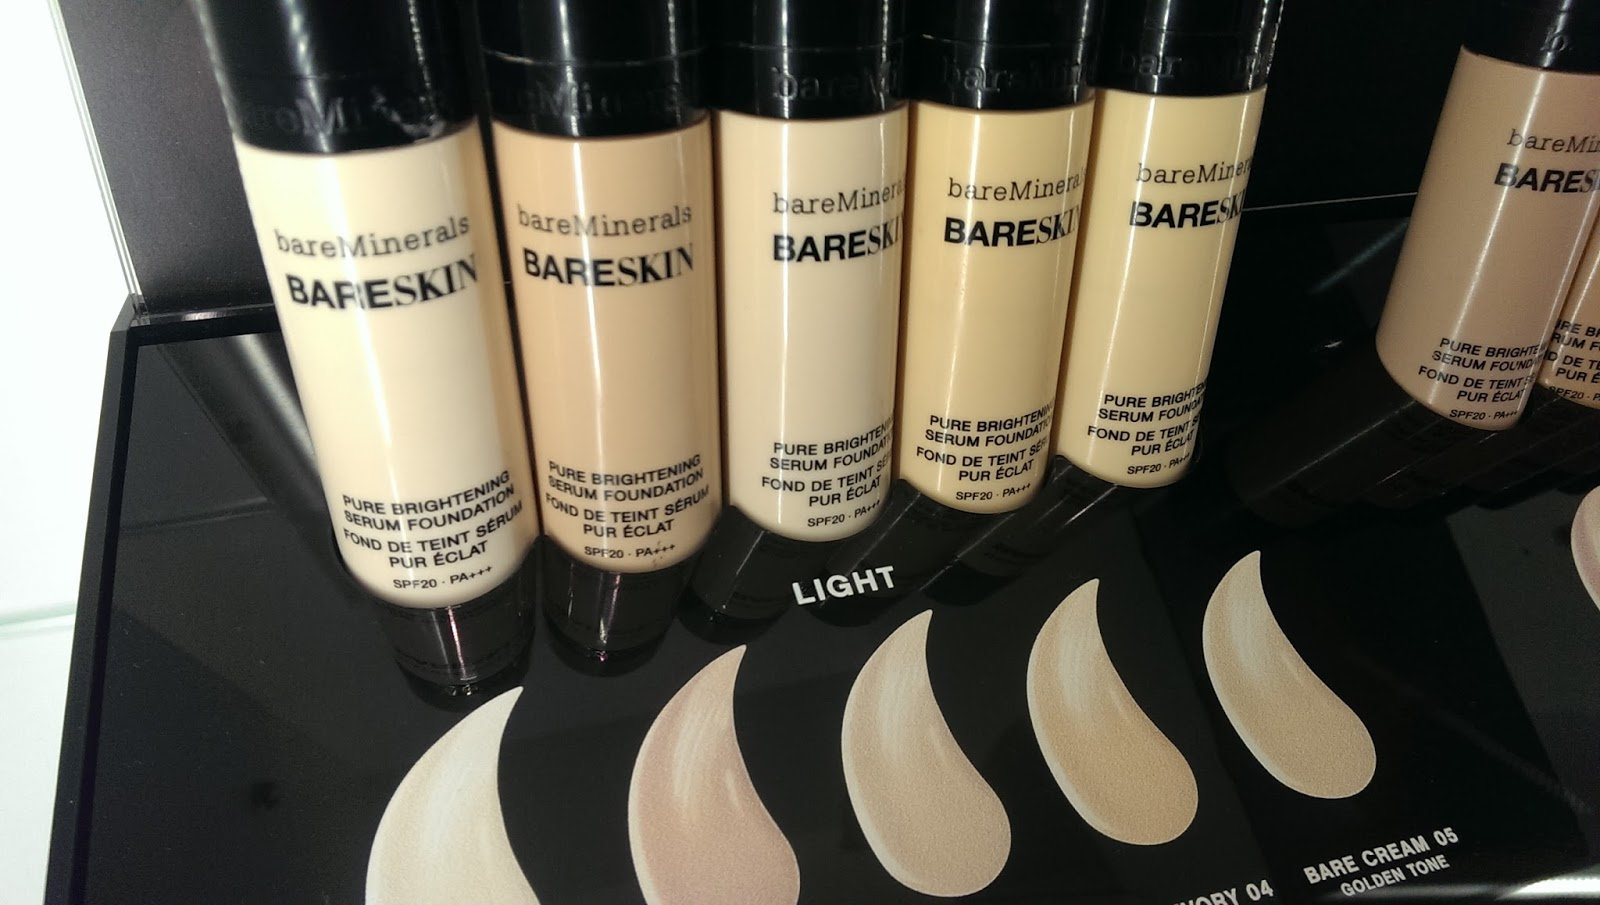 Bottles of Bare Minerals Bare Skin Display